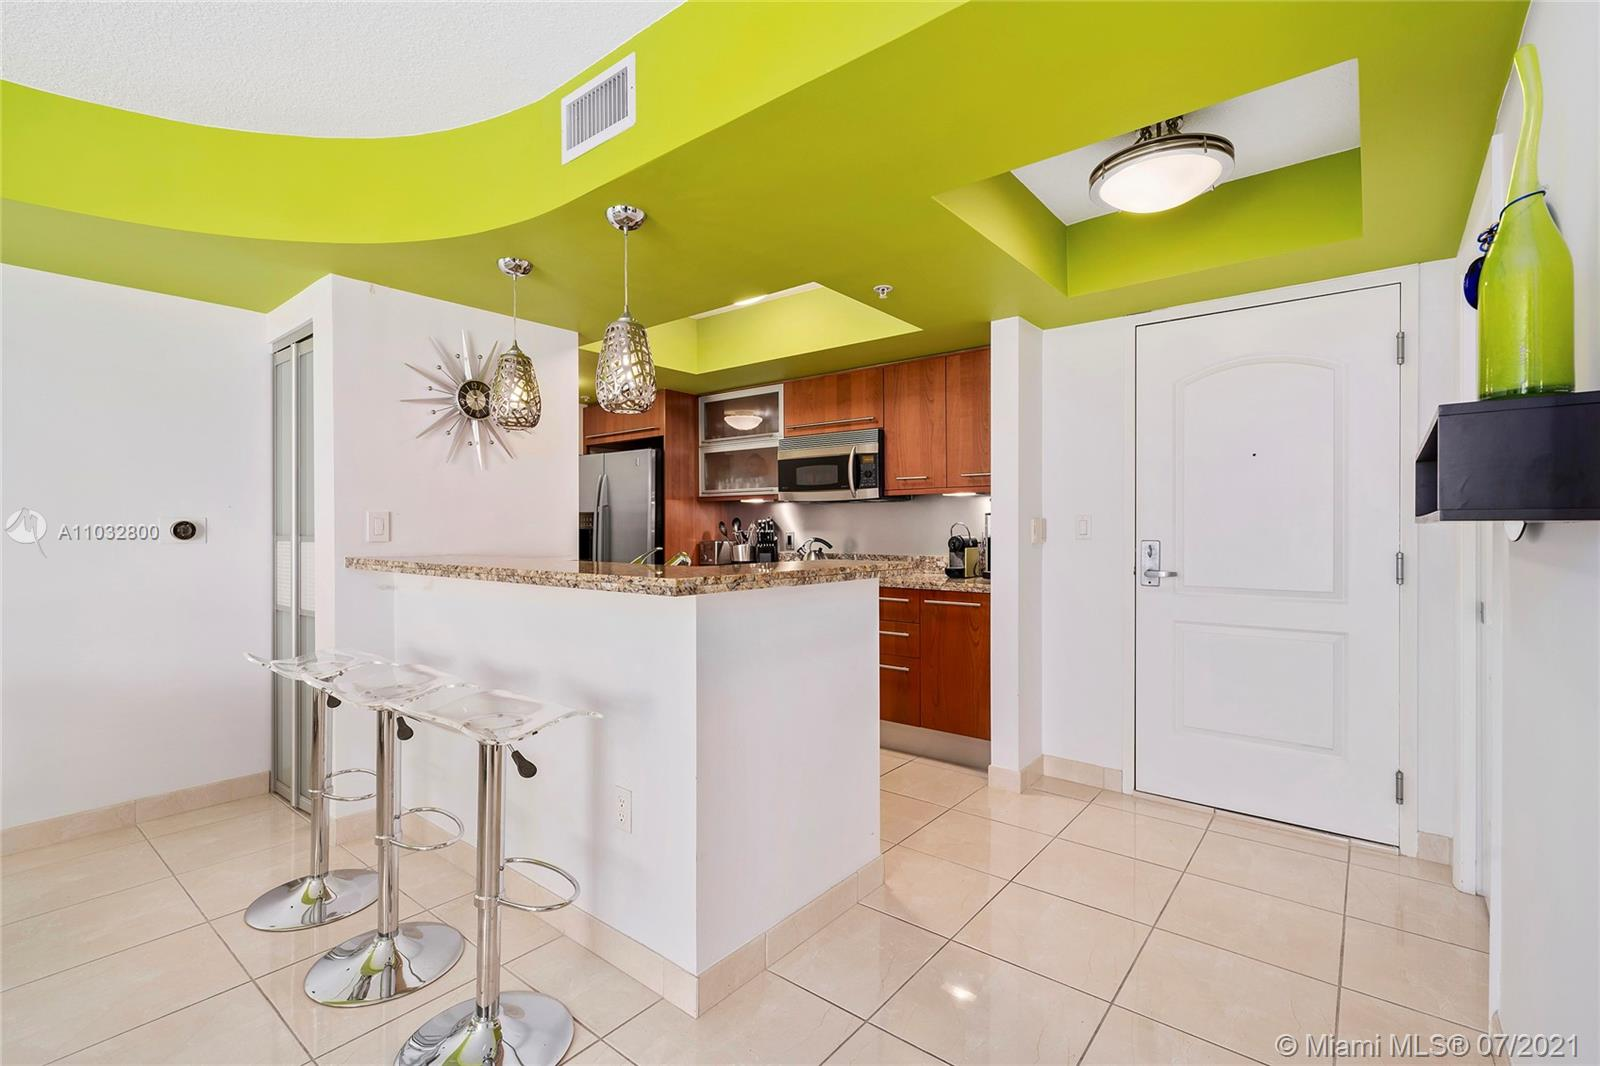 Unit offered furnished.  All furnishings and fixtures are modern with Tropical and beach-themed styling appropriate for South Beach Living.